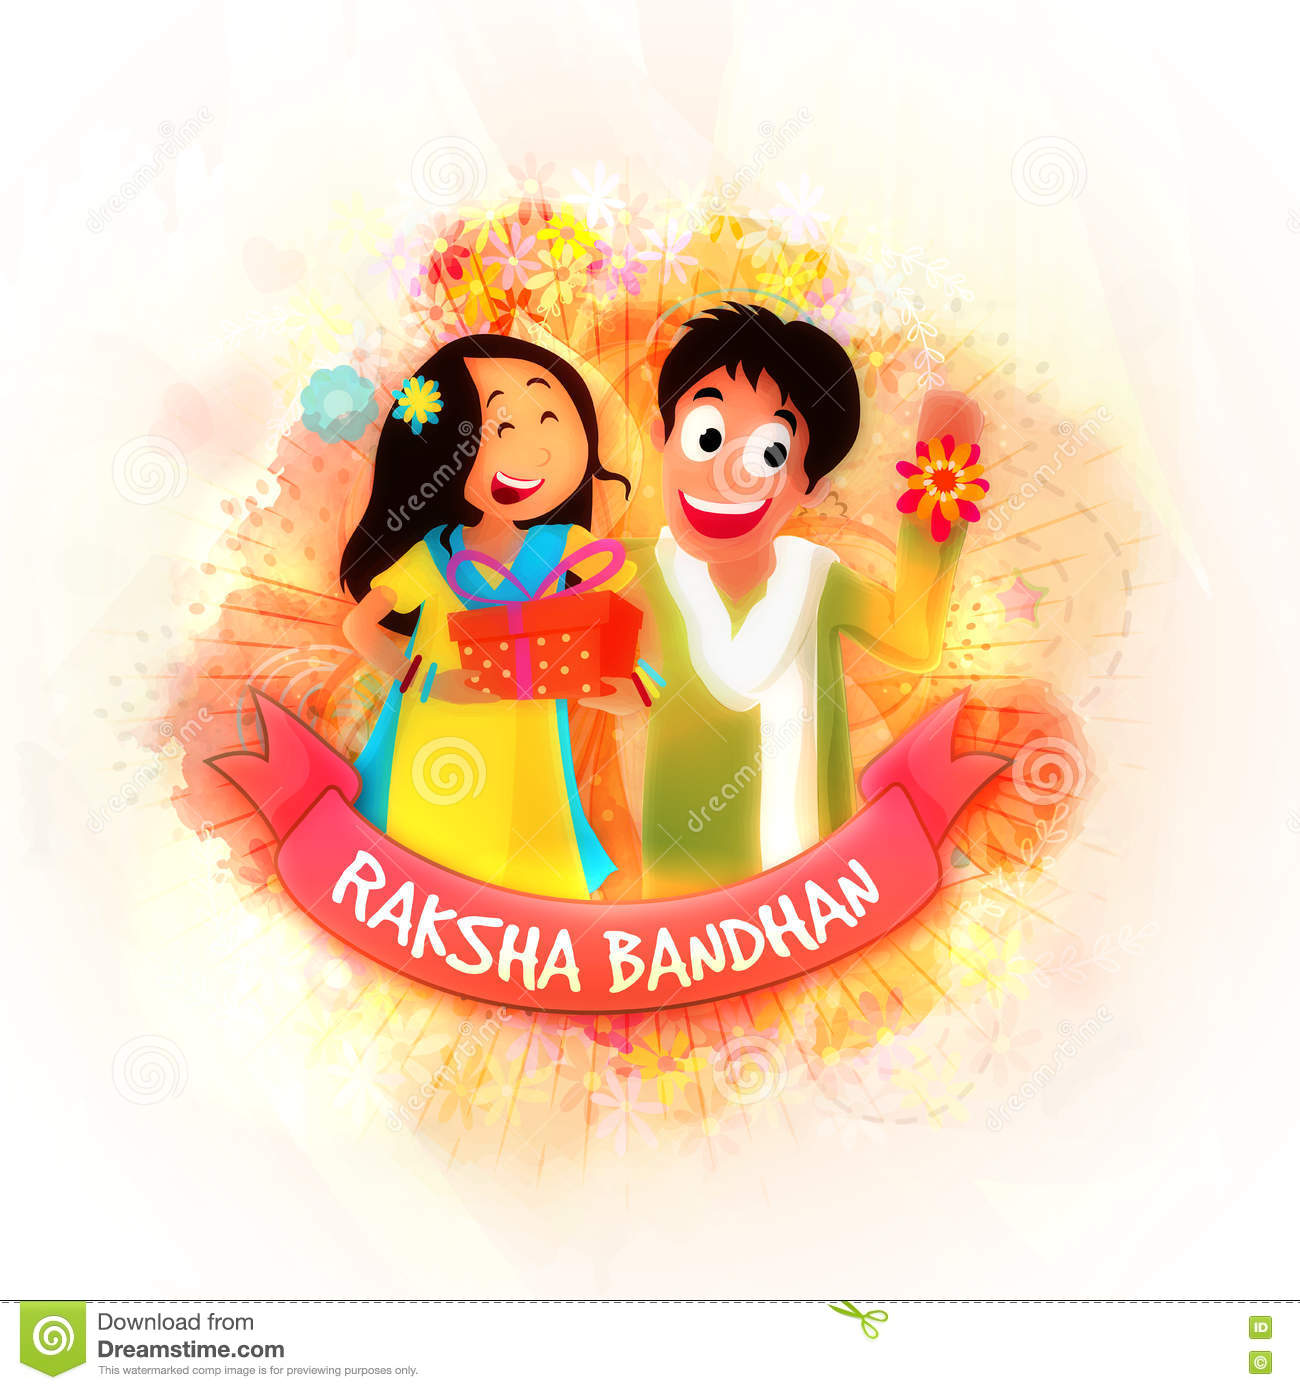 Brother and sister for raksha bandhan stock illustration brother and sister for raksha bandhan kristyandbryce Image collections